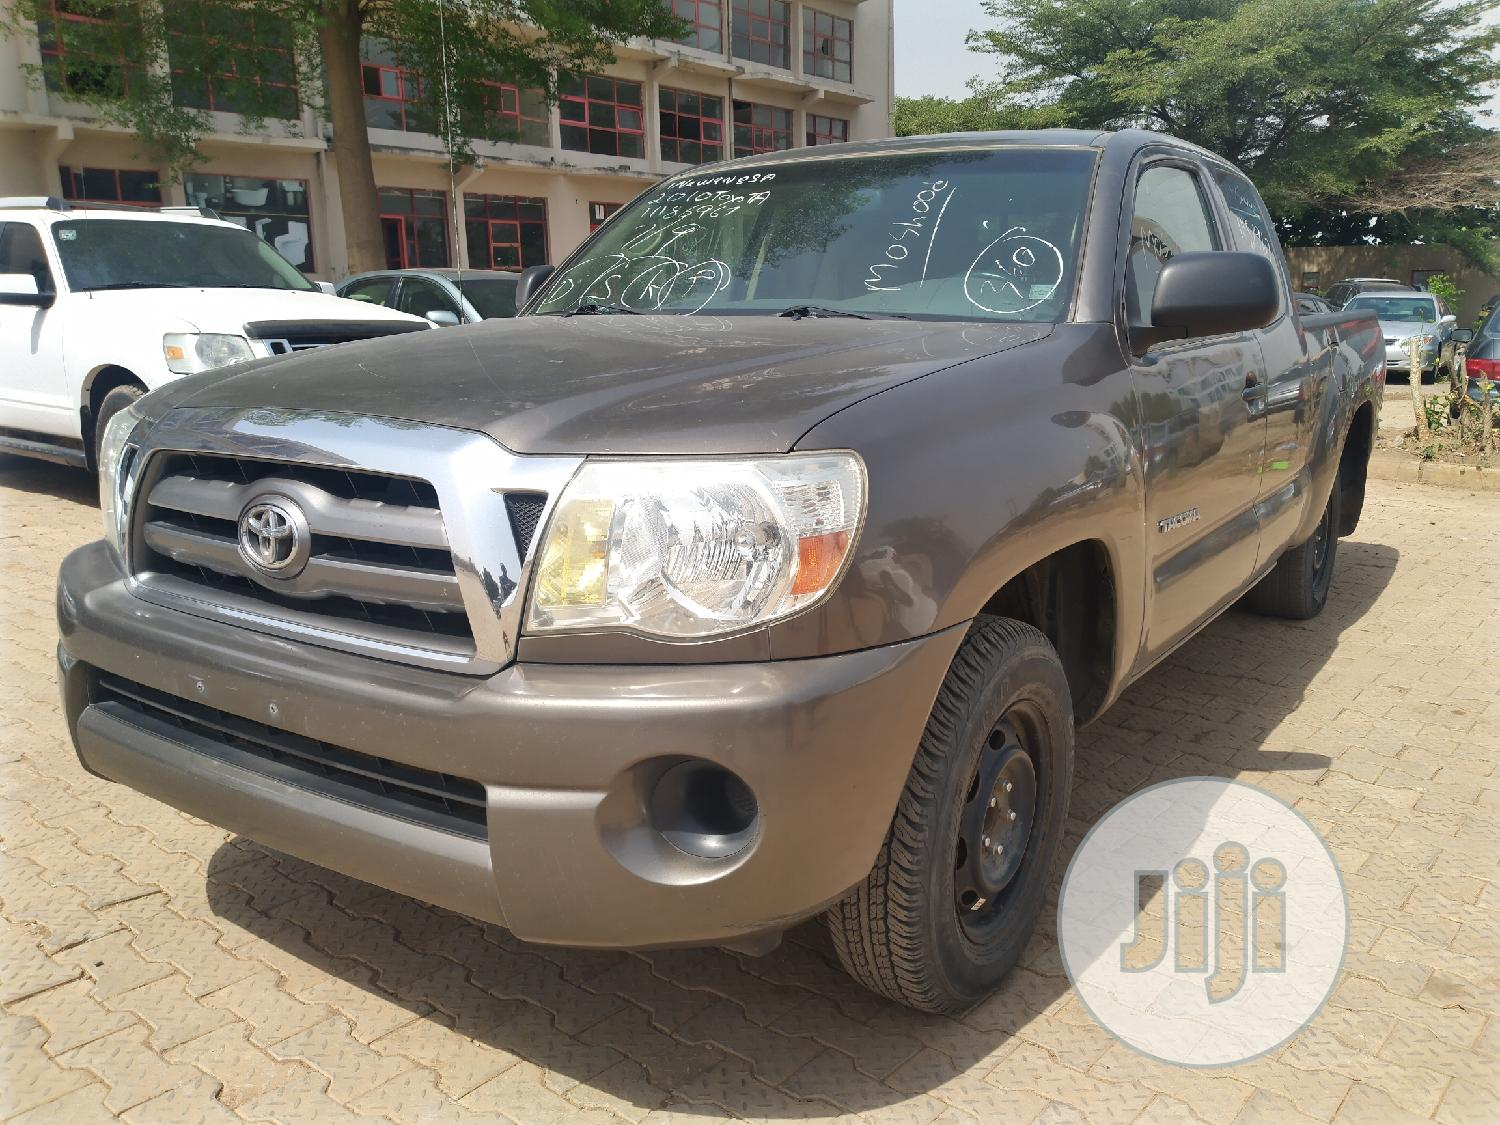 Archive: Toyota Tacoma 2010 PreRunner Access Cab Gray